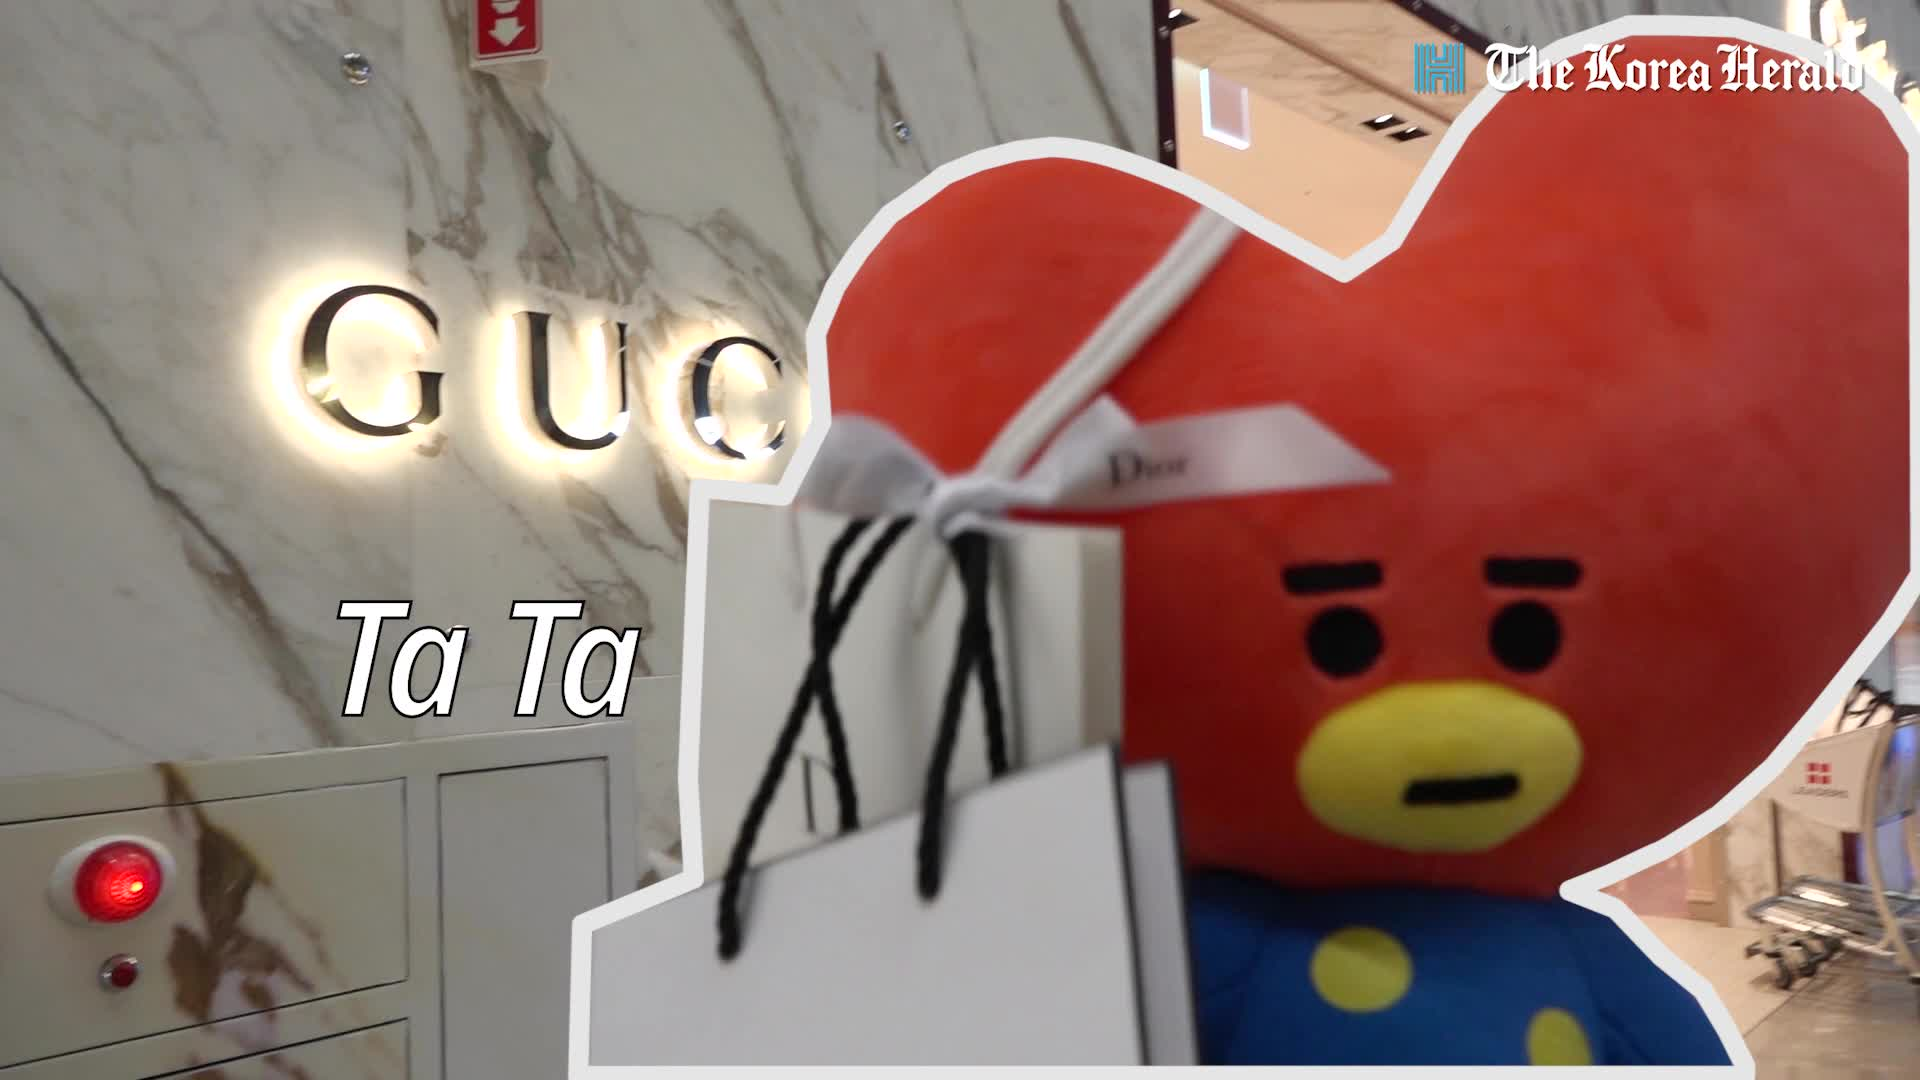 [Part 1] Why is BT21 at Incheon Airport?